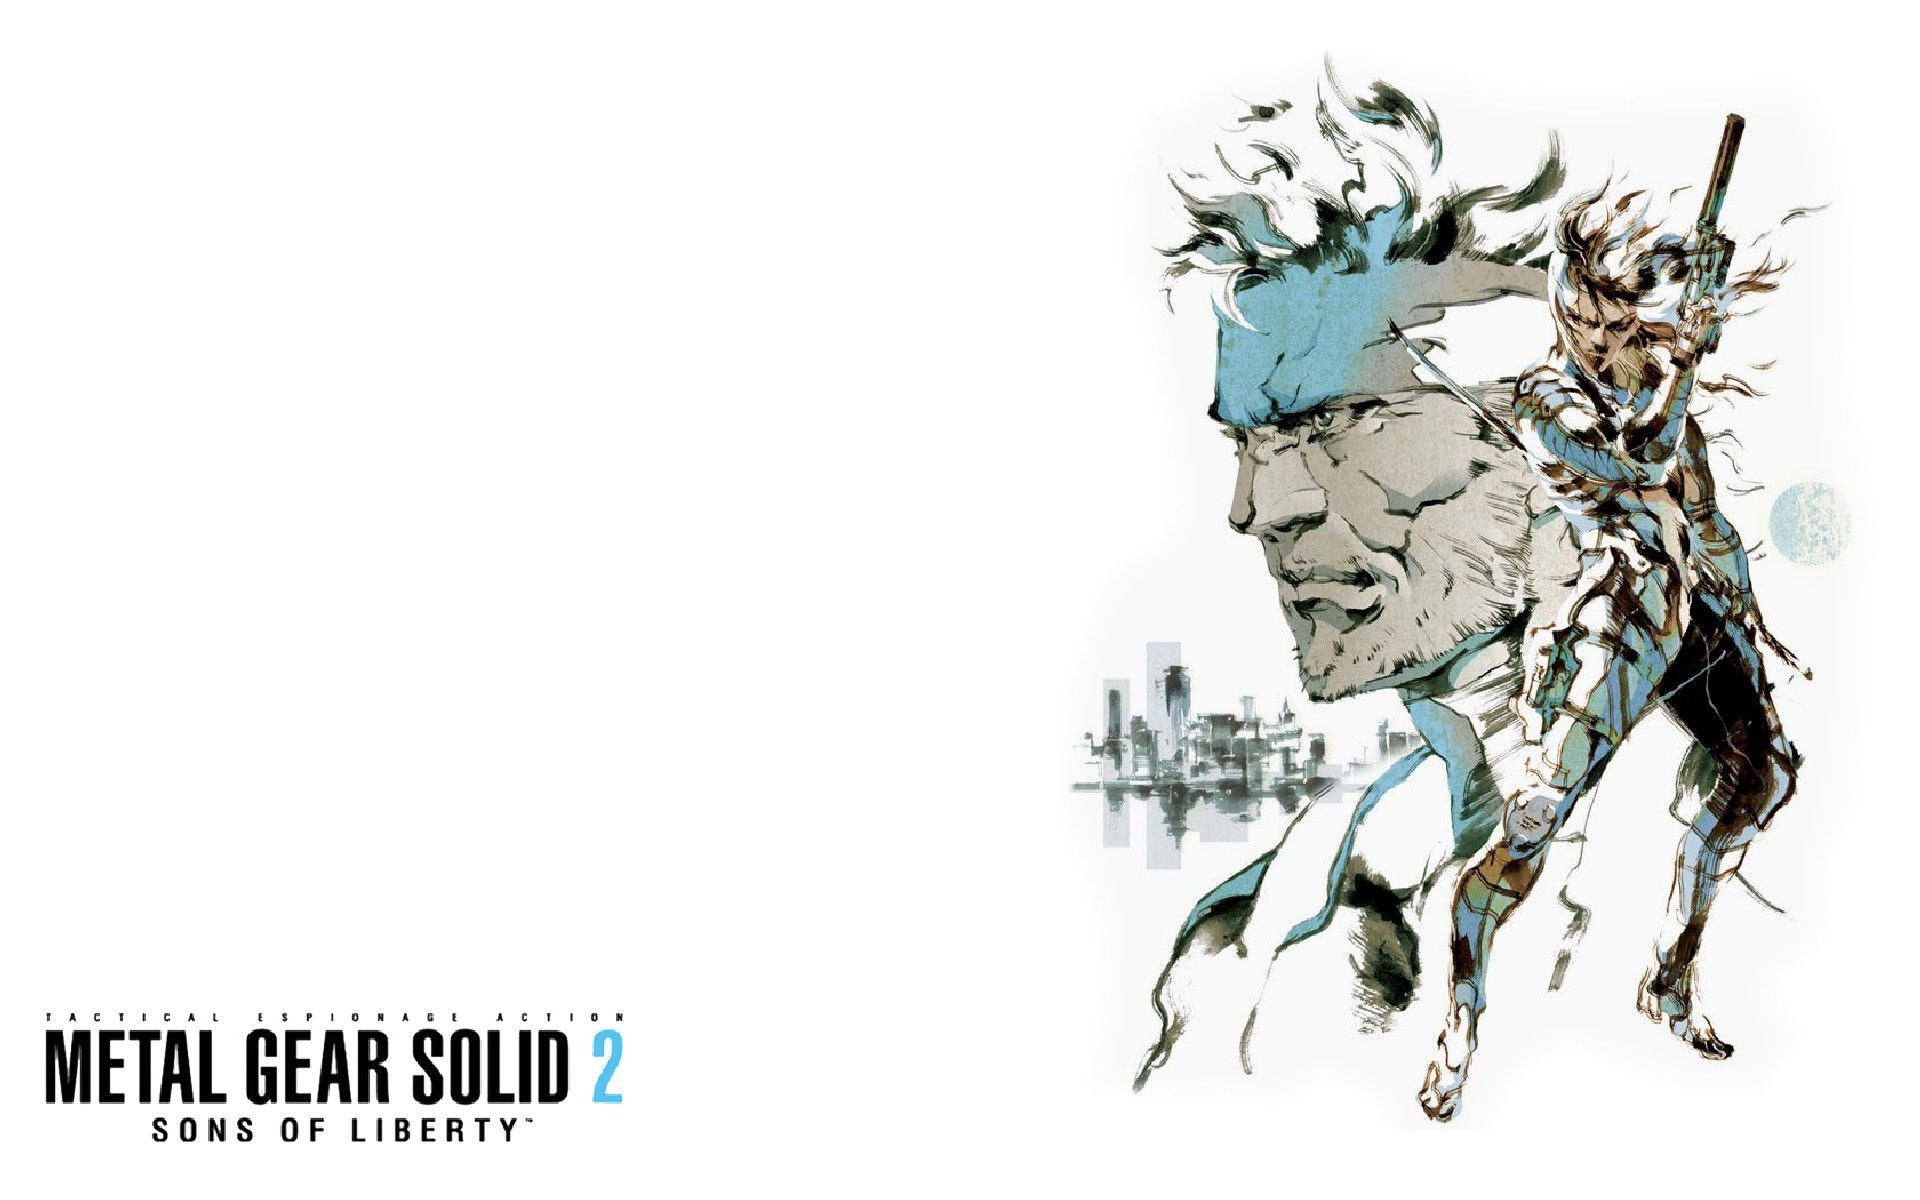 Metal Gear Solid 2 Wallpaper